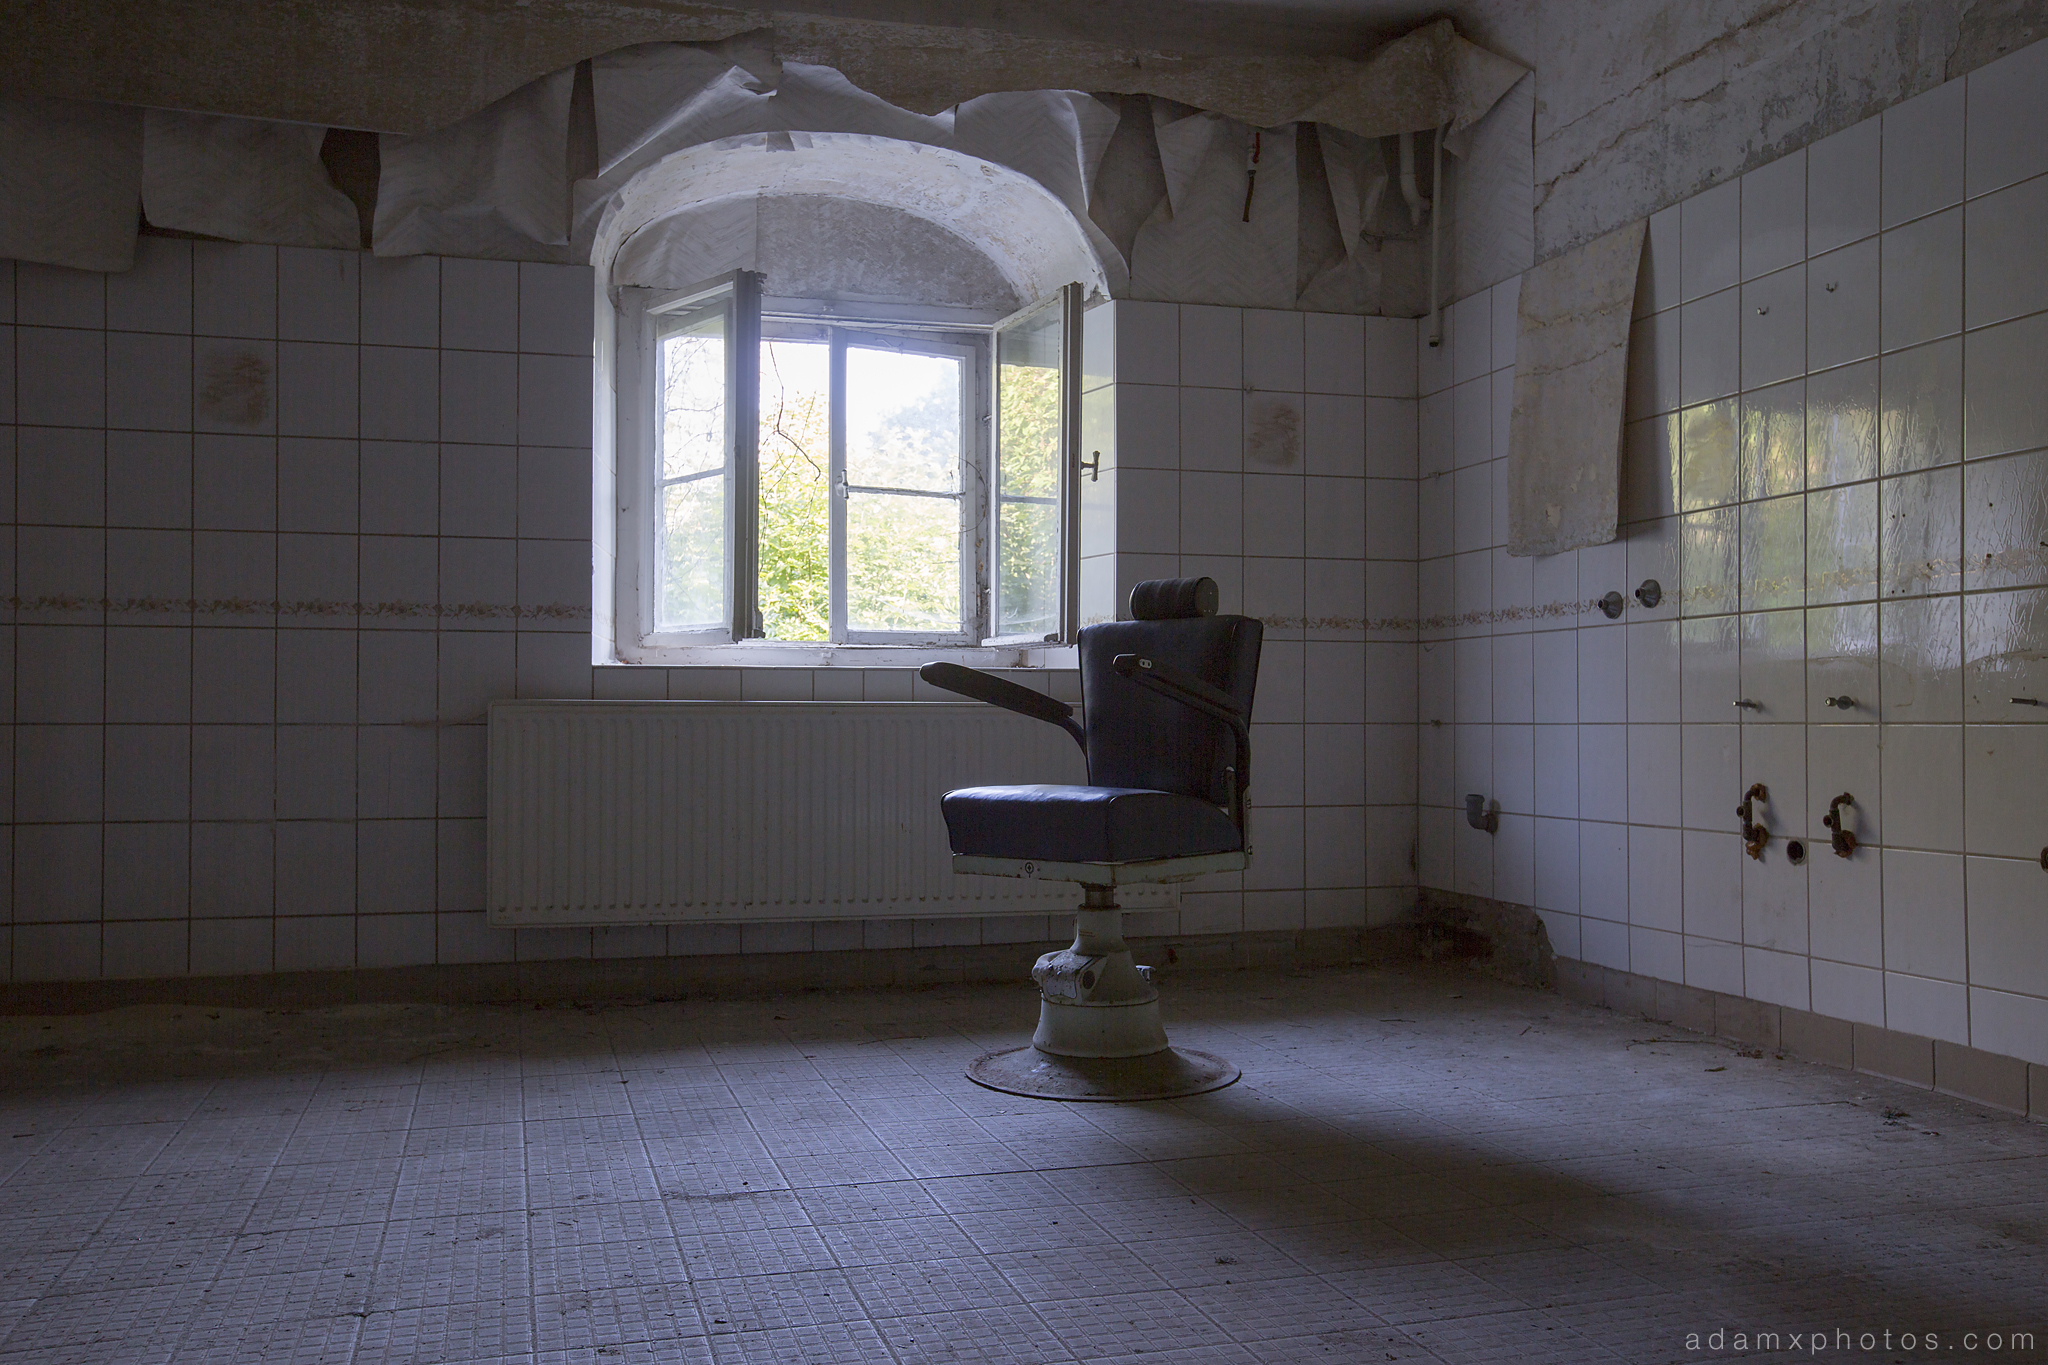 Adam X Urbex Krankenhaus von rollstuhlen Hospital of wheelchairs Germany Urban Exploration Decay Lost Abandoned Hidden Wheelchair chair